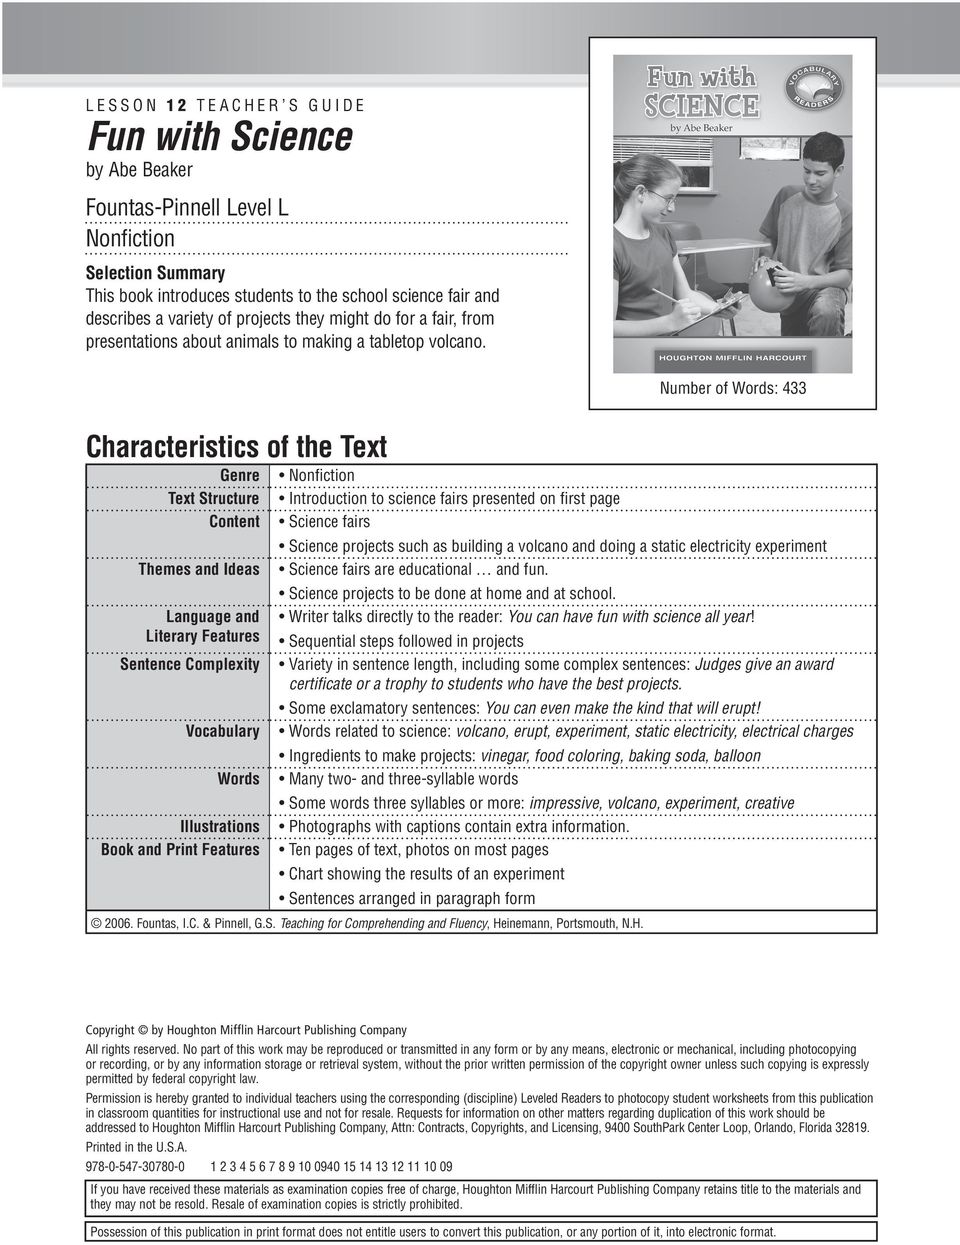 Number of Words: 433 Characteristics of the Text Genre Nonfi ction Text Structure Introduction to science fairs presented on fi rst page Content Science fairs Science projects such as building a